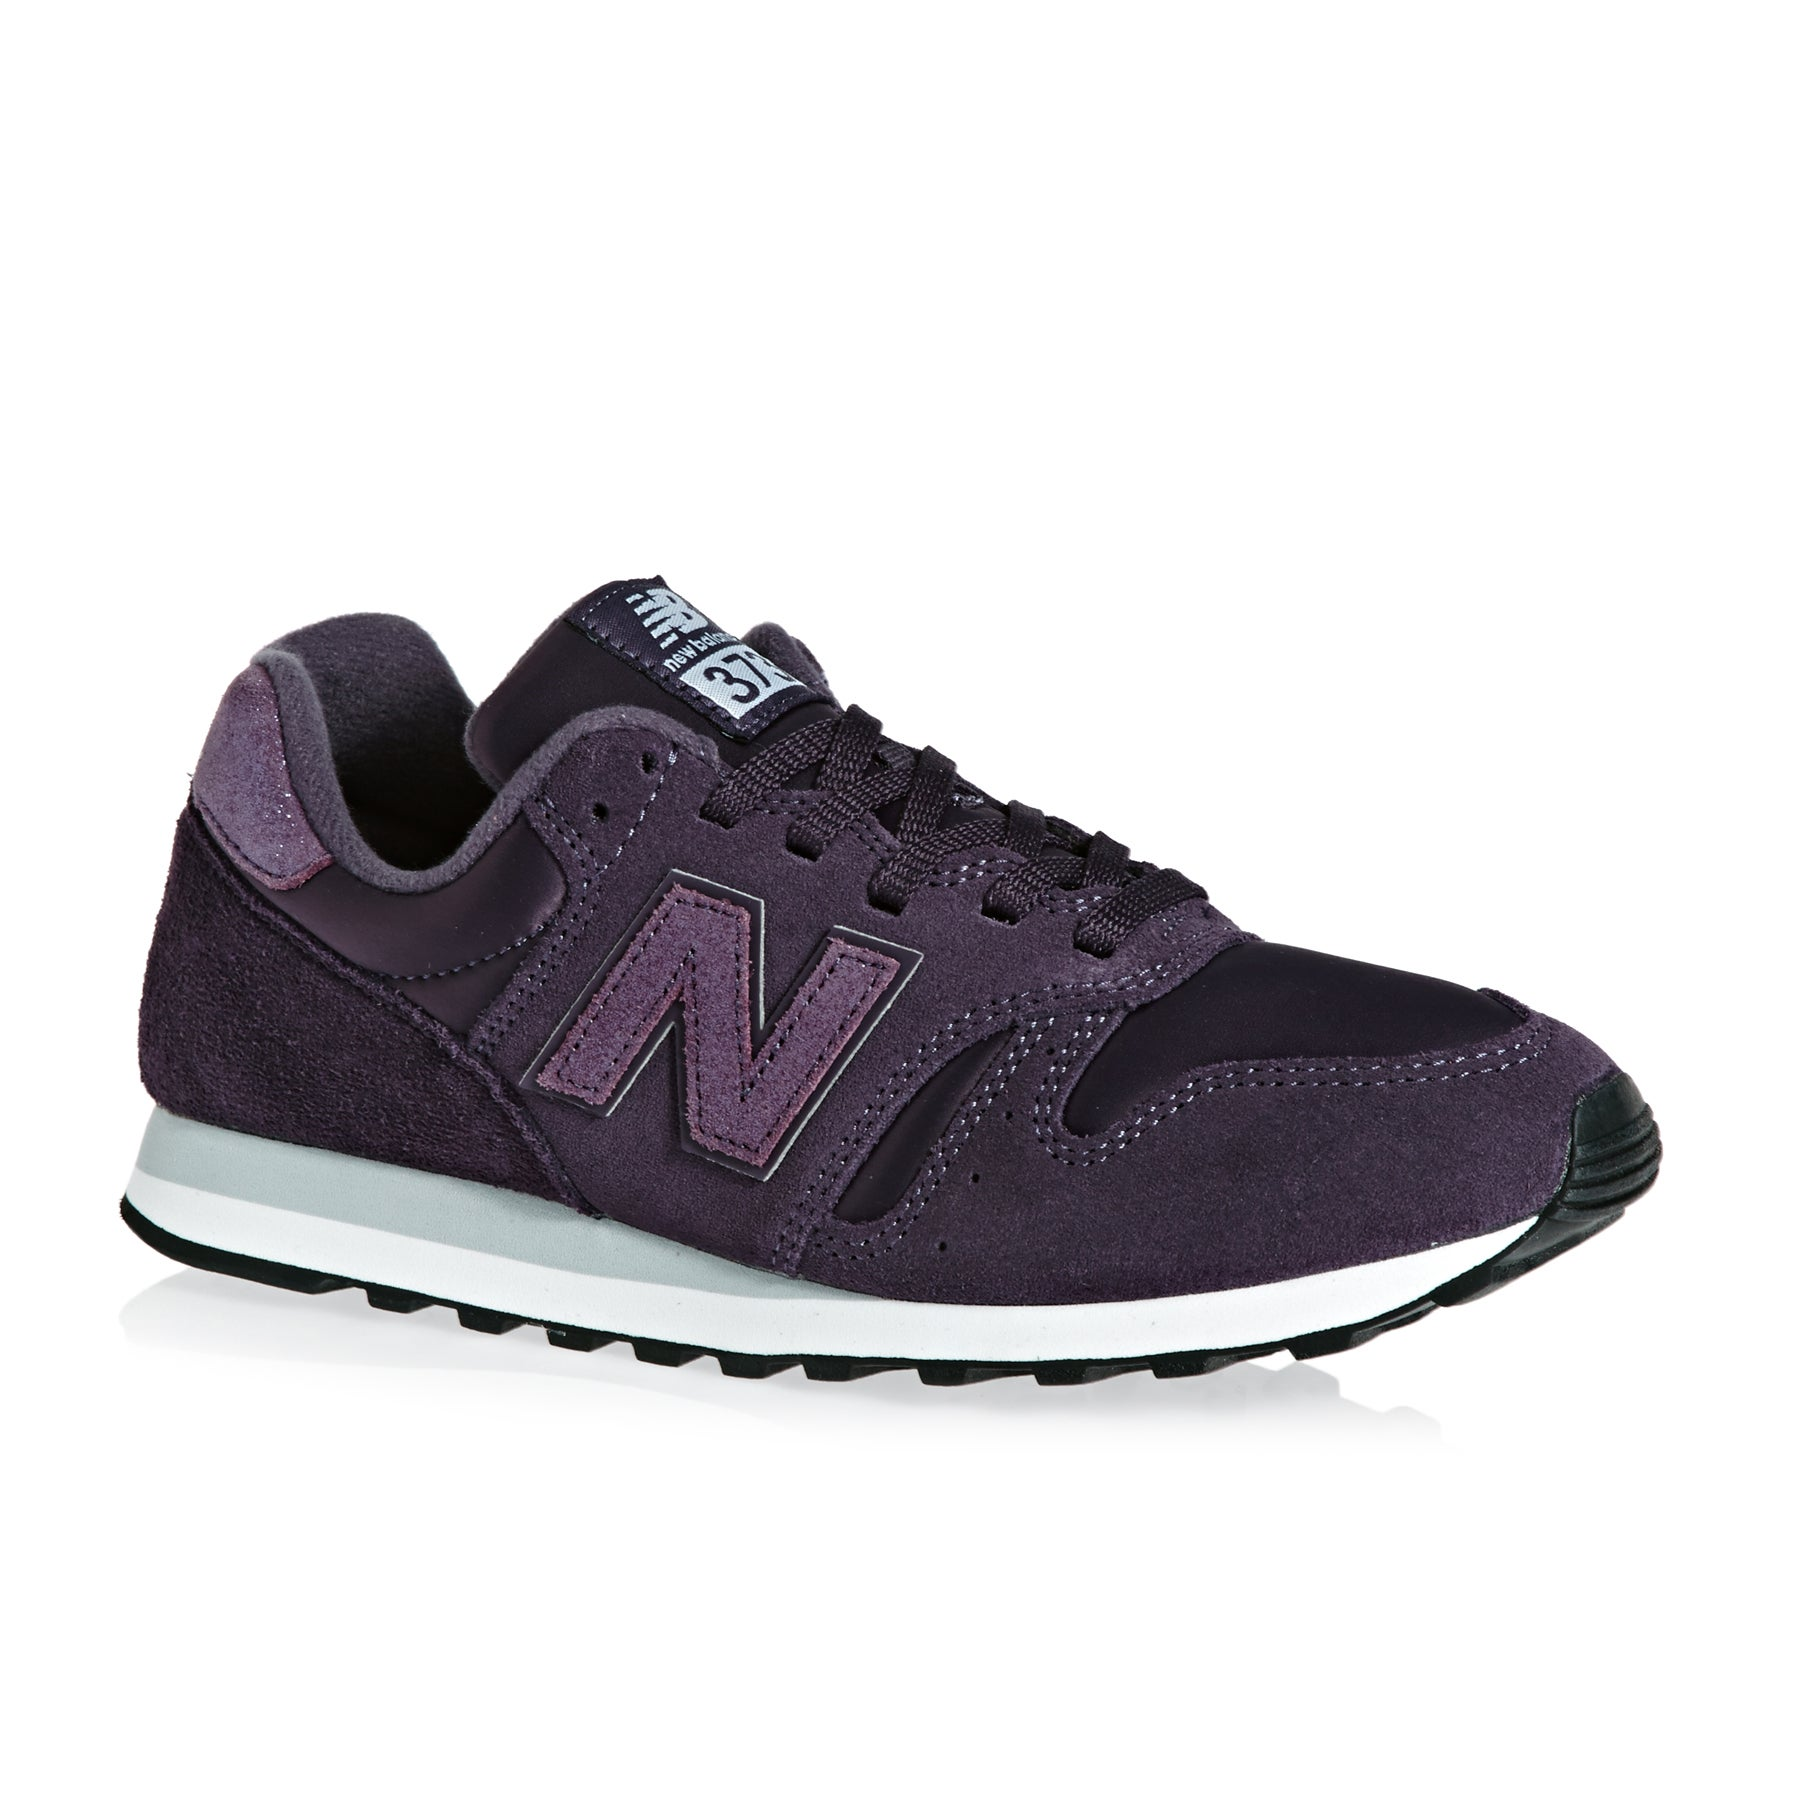 New Balance Wl373 Womens Running Shoes - Elderberry